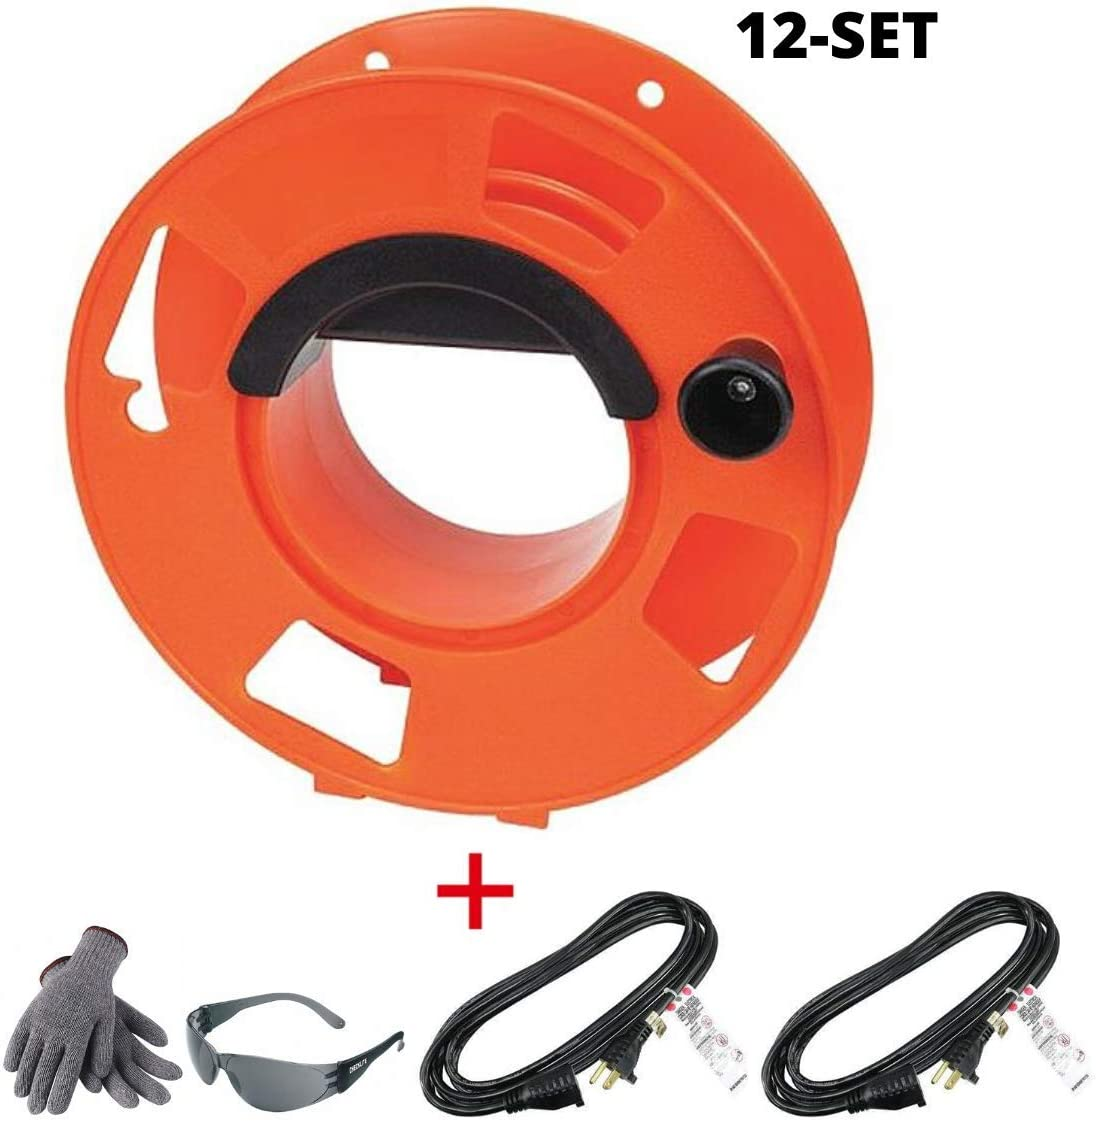 100-Feet 4-Pack KW-110 Cord Storage Reel with Center Spin Handle